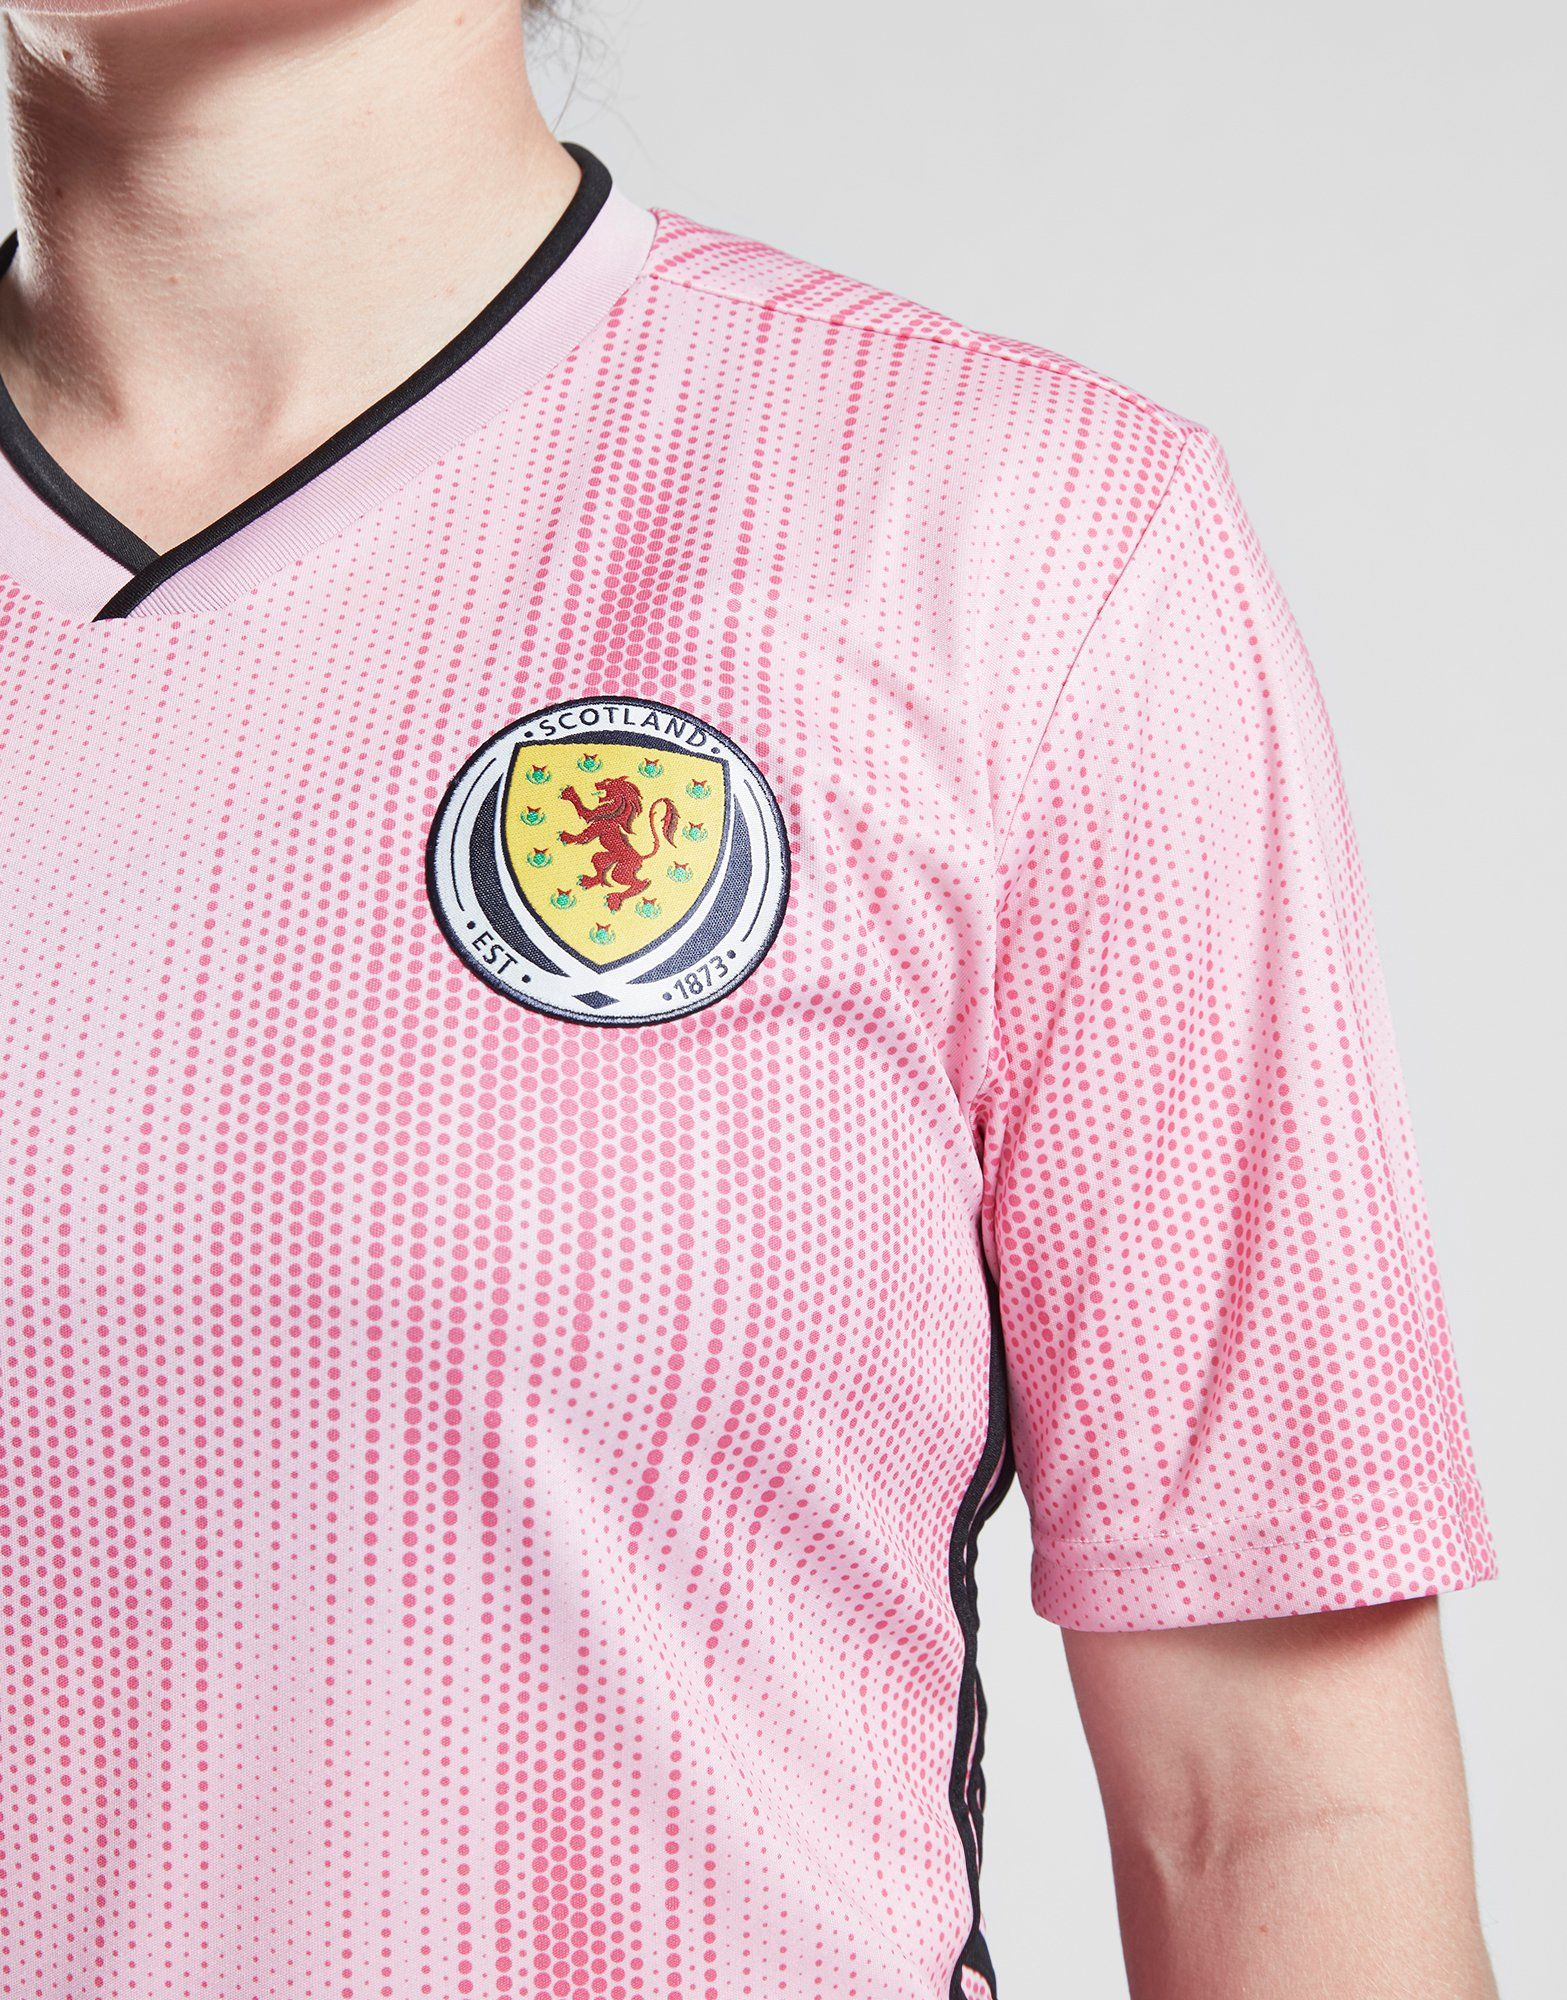 adidas Scotland WWC 2019 Away Shirt Women's PRE ORDER